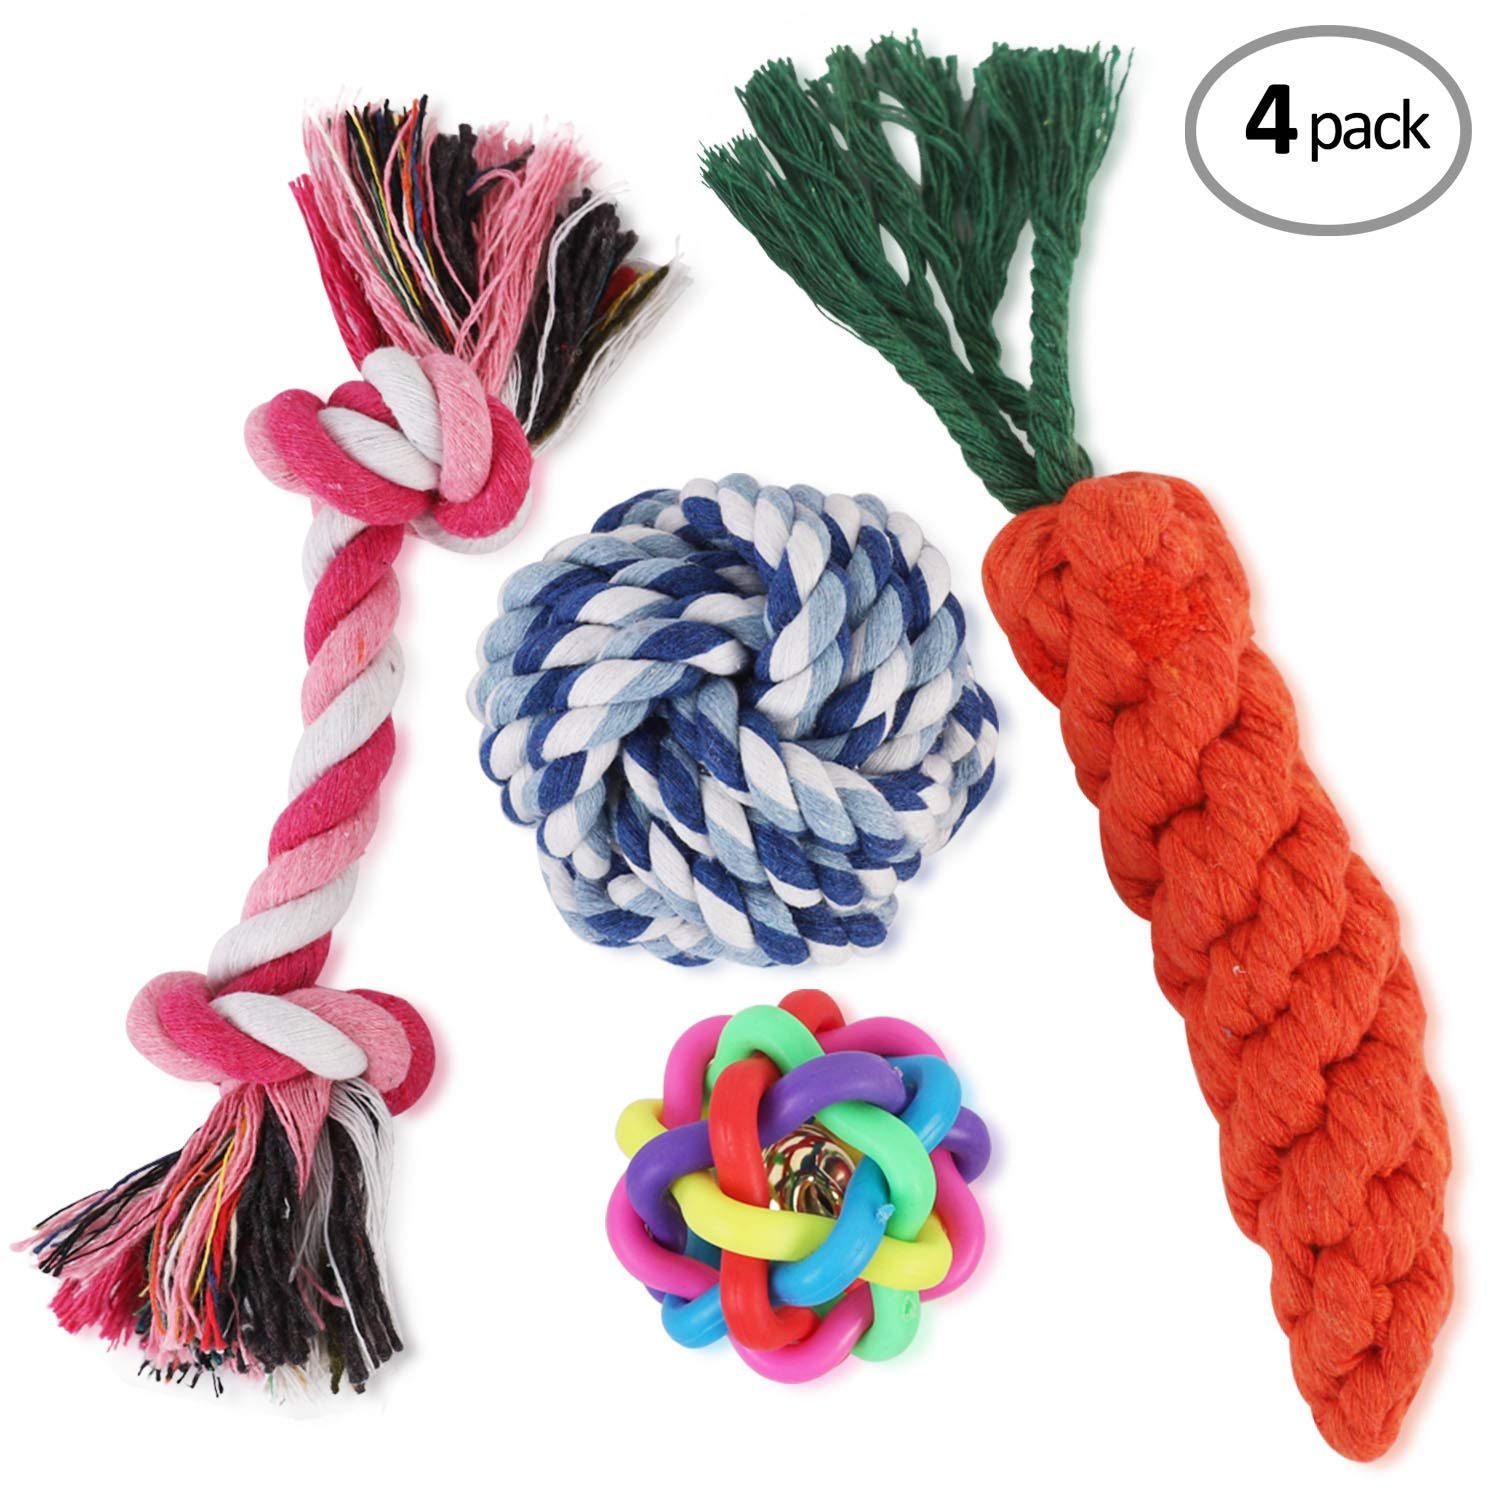 WOT I Dog Rope Toys Dog Chew Toys Set of 4/5/6/10 Durable Cotton Dog Toys for Small and Medium Dogs Small Dog Rope Toys for Training Tug-of-War Playing-Dog Rope Toy for Small Dogs